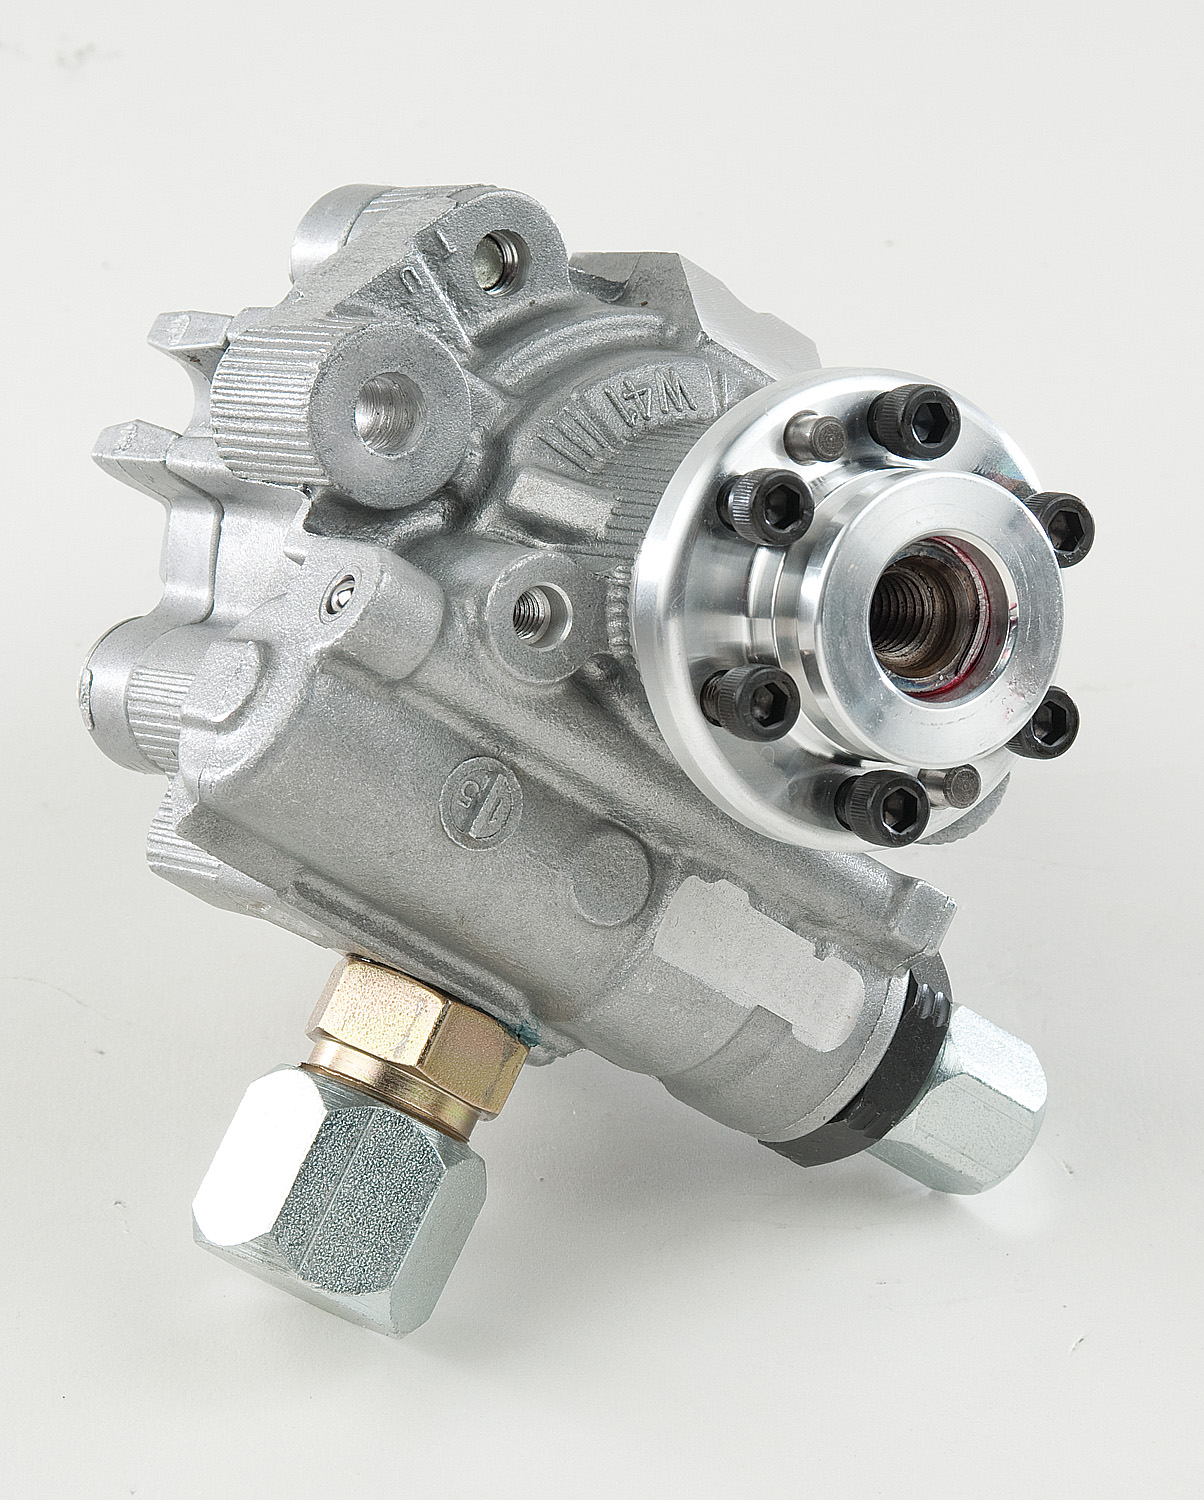 SWEET ALUM PS PUMP w/6 BOLT CV HUB